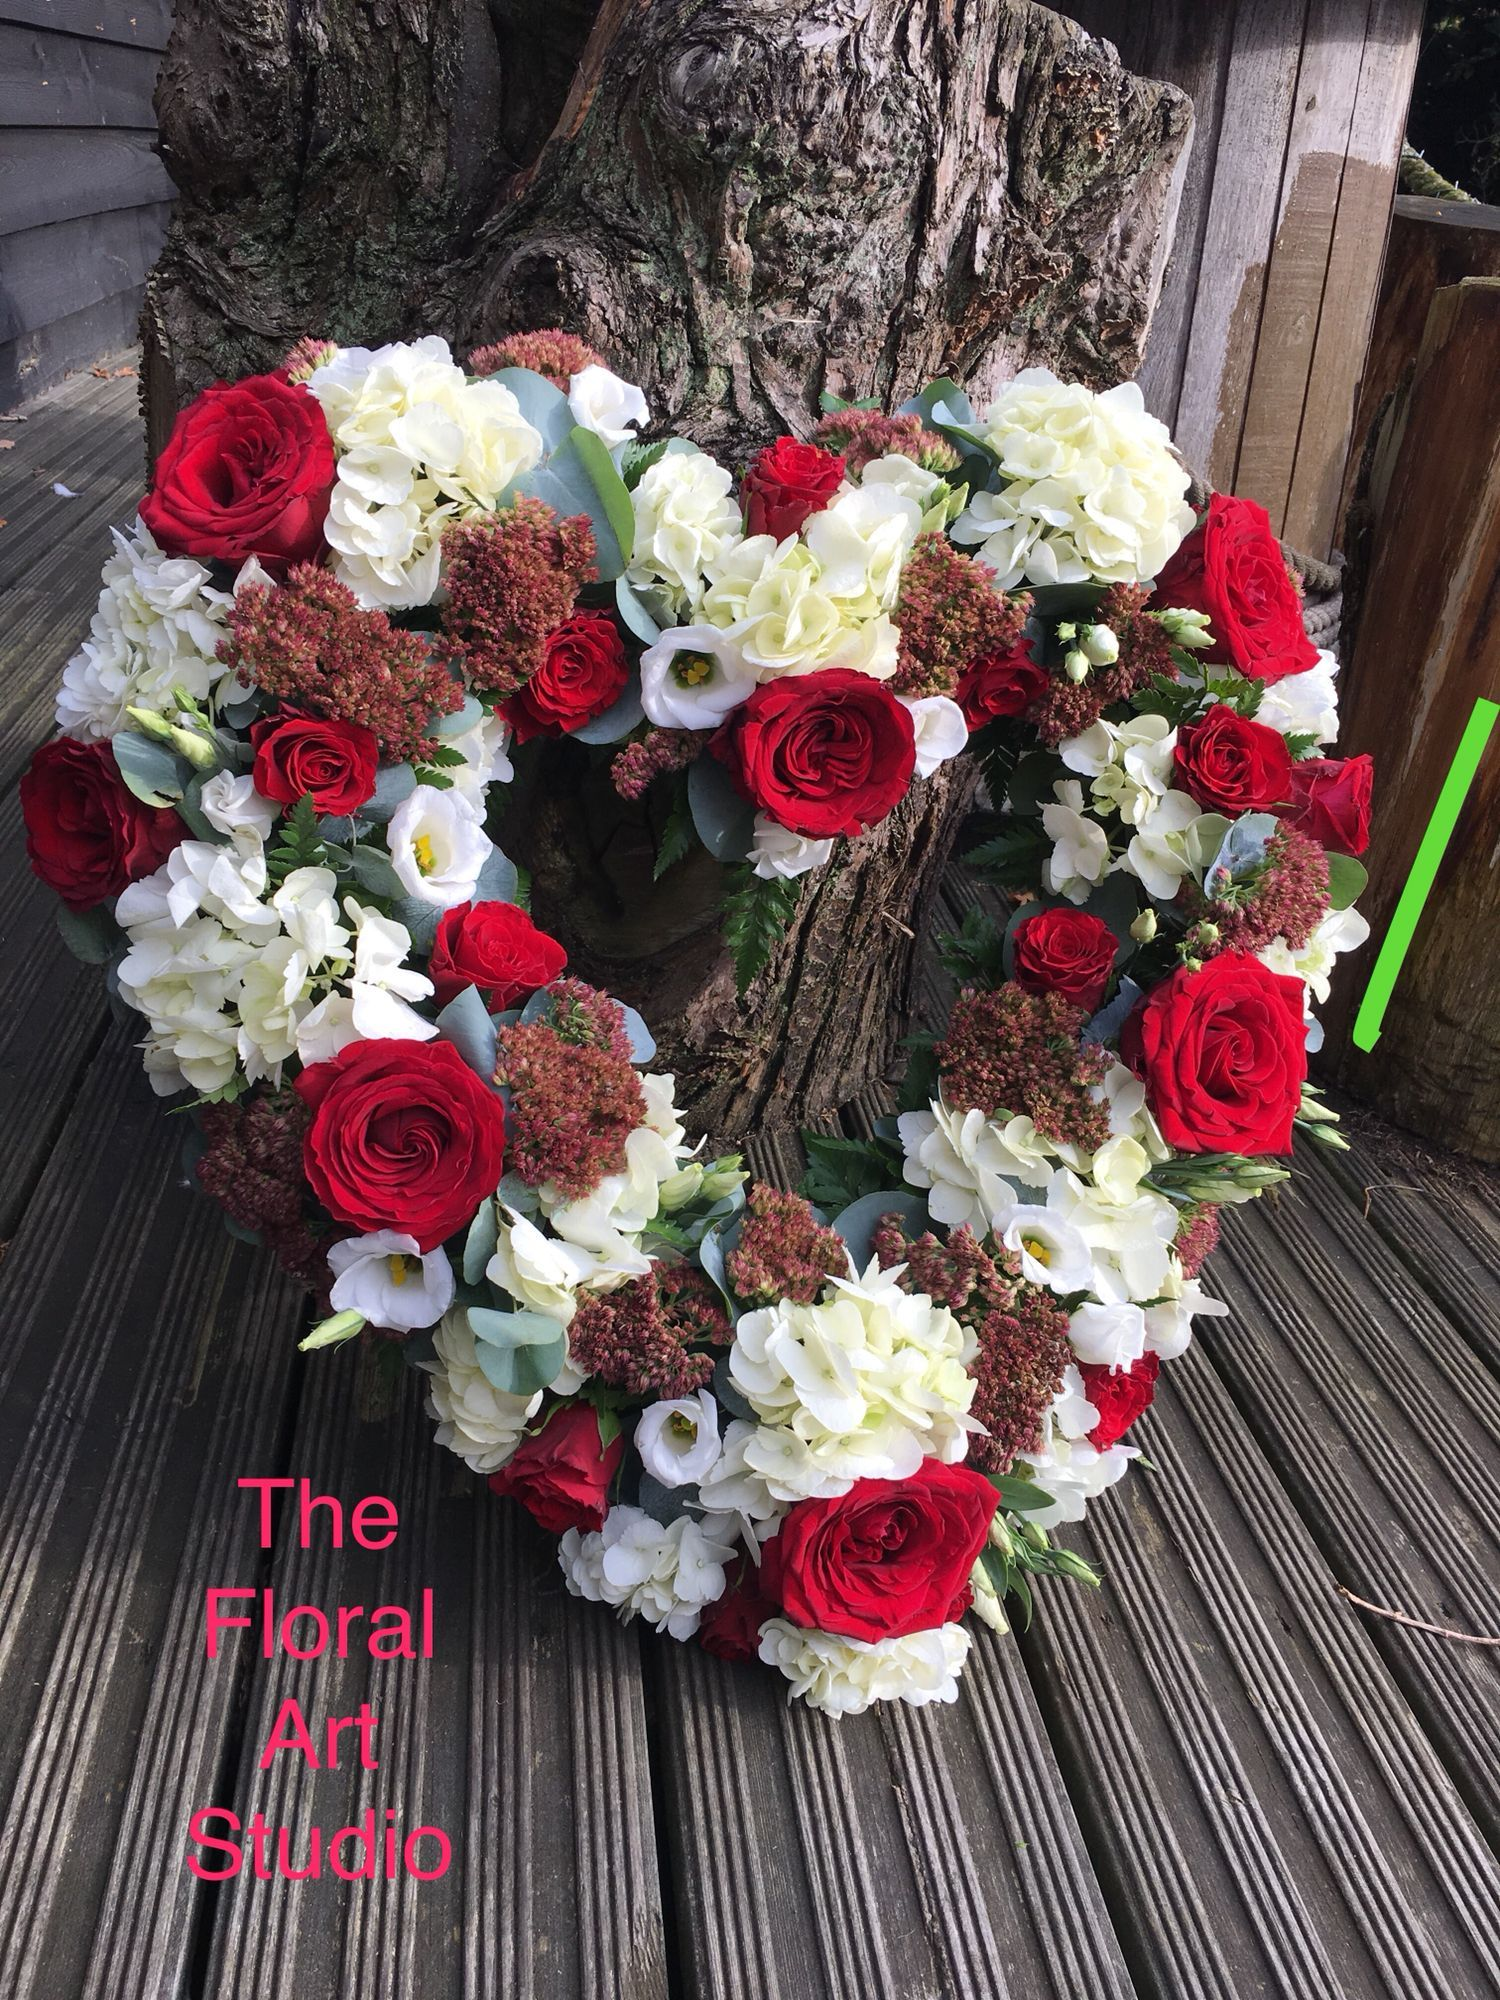 21 funeral flowers from interflora funeral attire funeral and awesome 21 funeral flowers from interflora httpsideacoration2017111621 funeral flowers interflora as stated earlier funerals are very costly izmirmasajfo